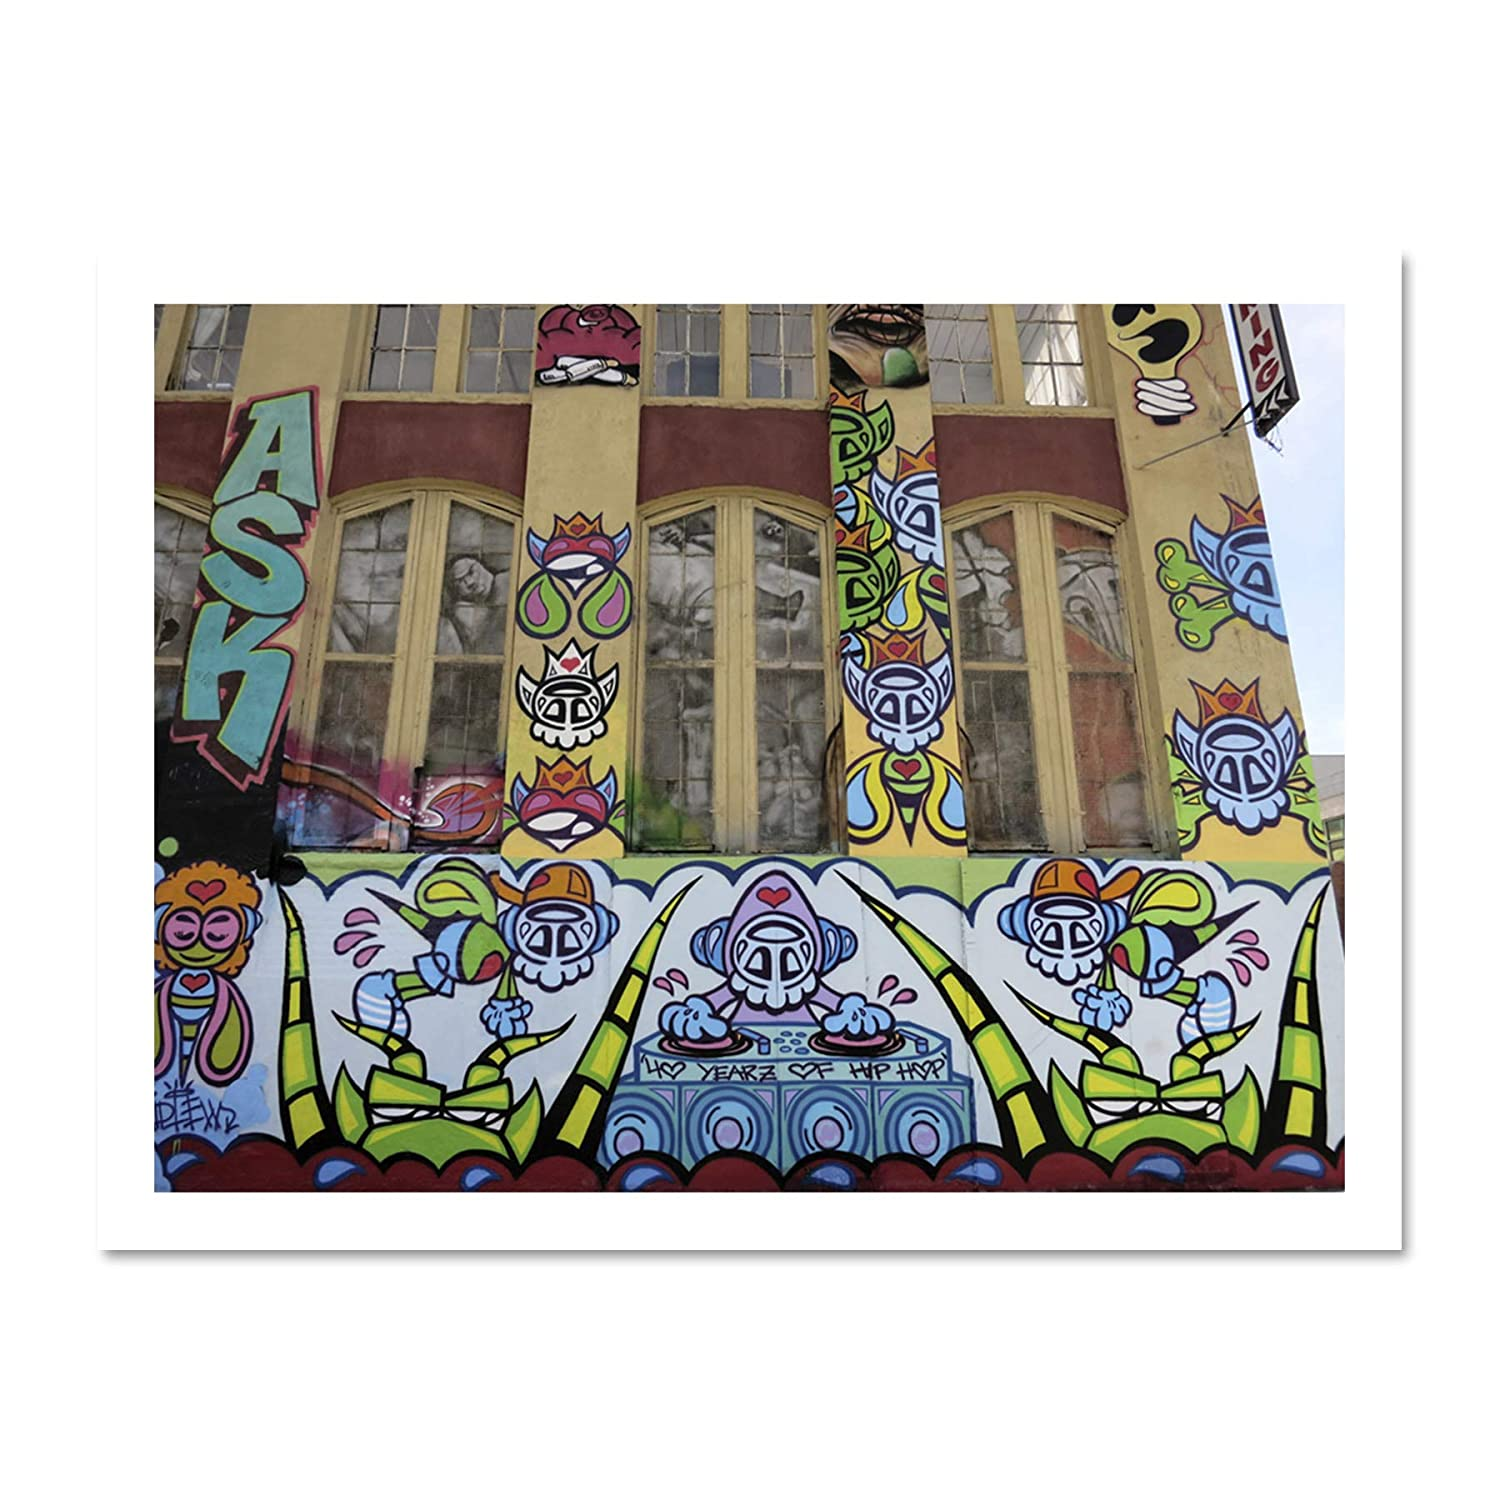 Amazon com: PHOTOGRAPHY GRAFFITI MURAL STREET WALL DJ DECKS